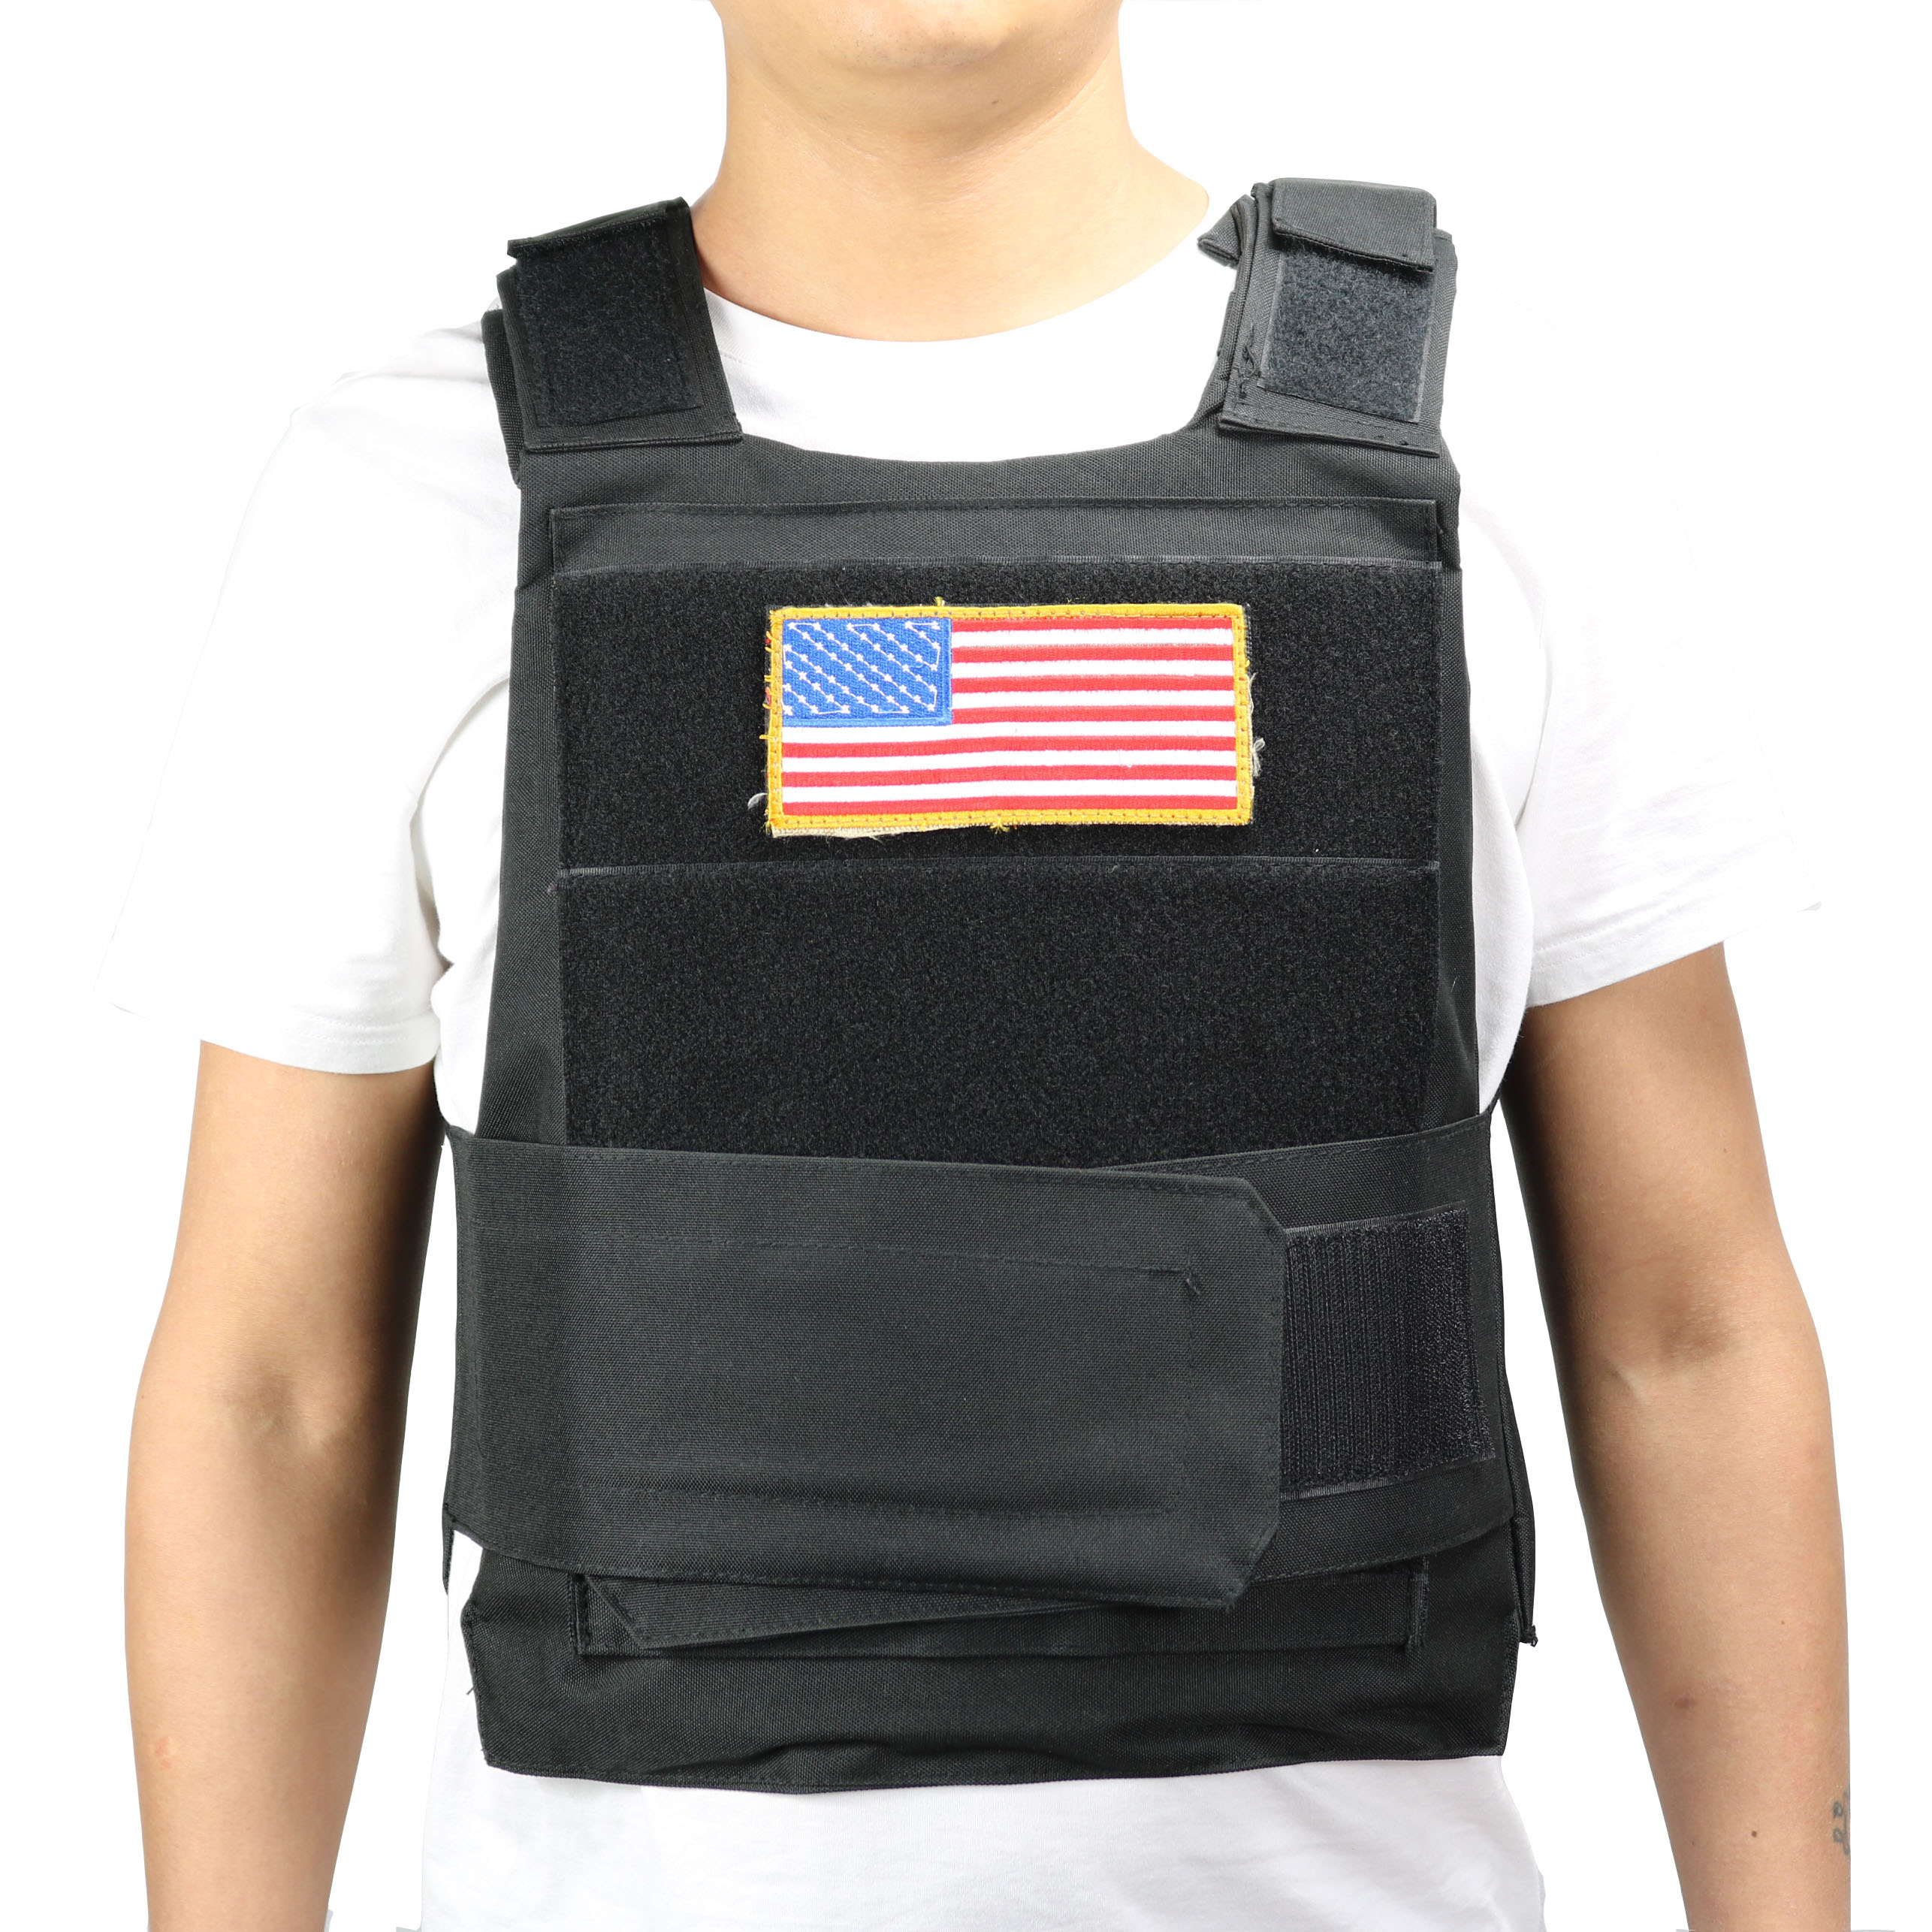 Chenhao 2019 hot sale cheap high quality tactical vest for police outdoor military vest